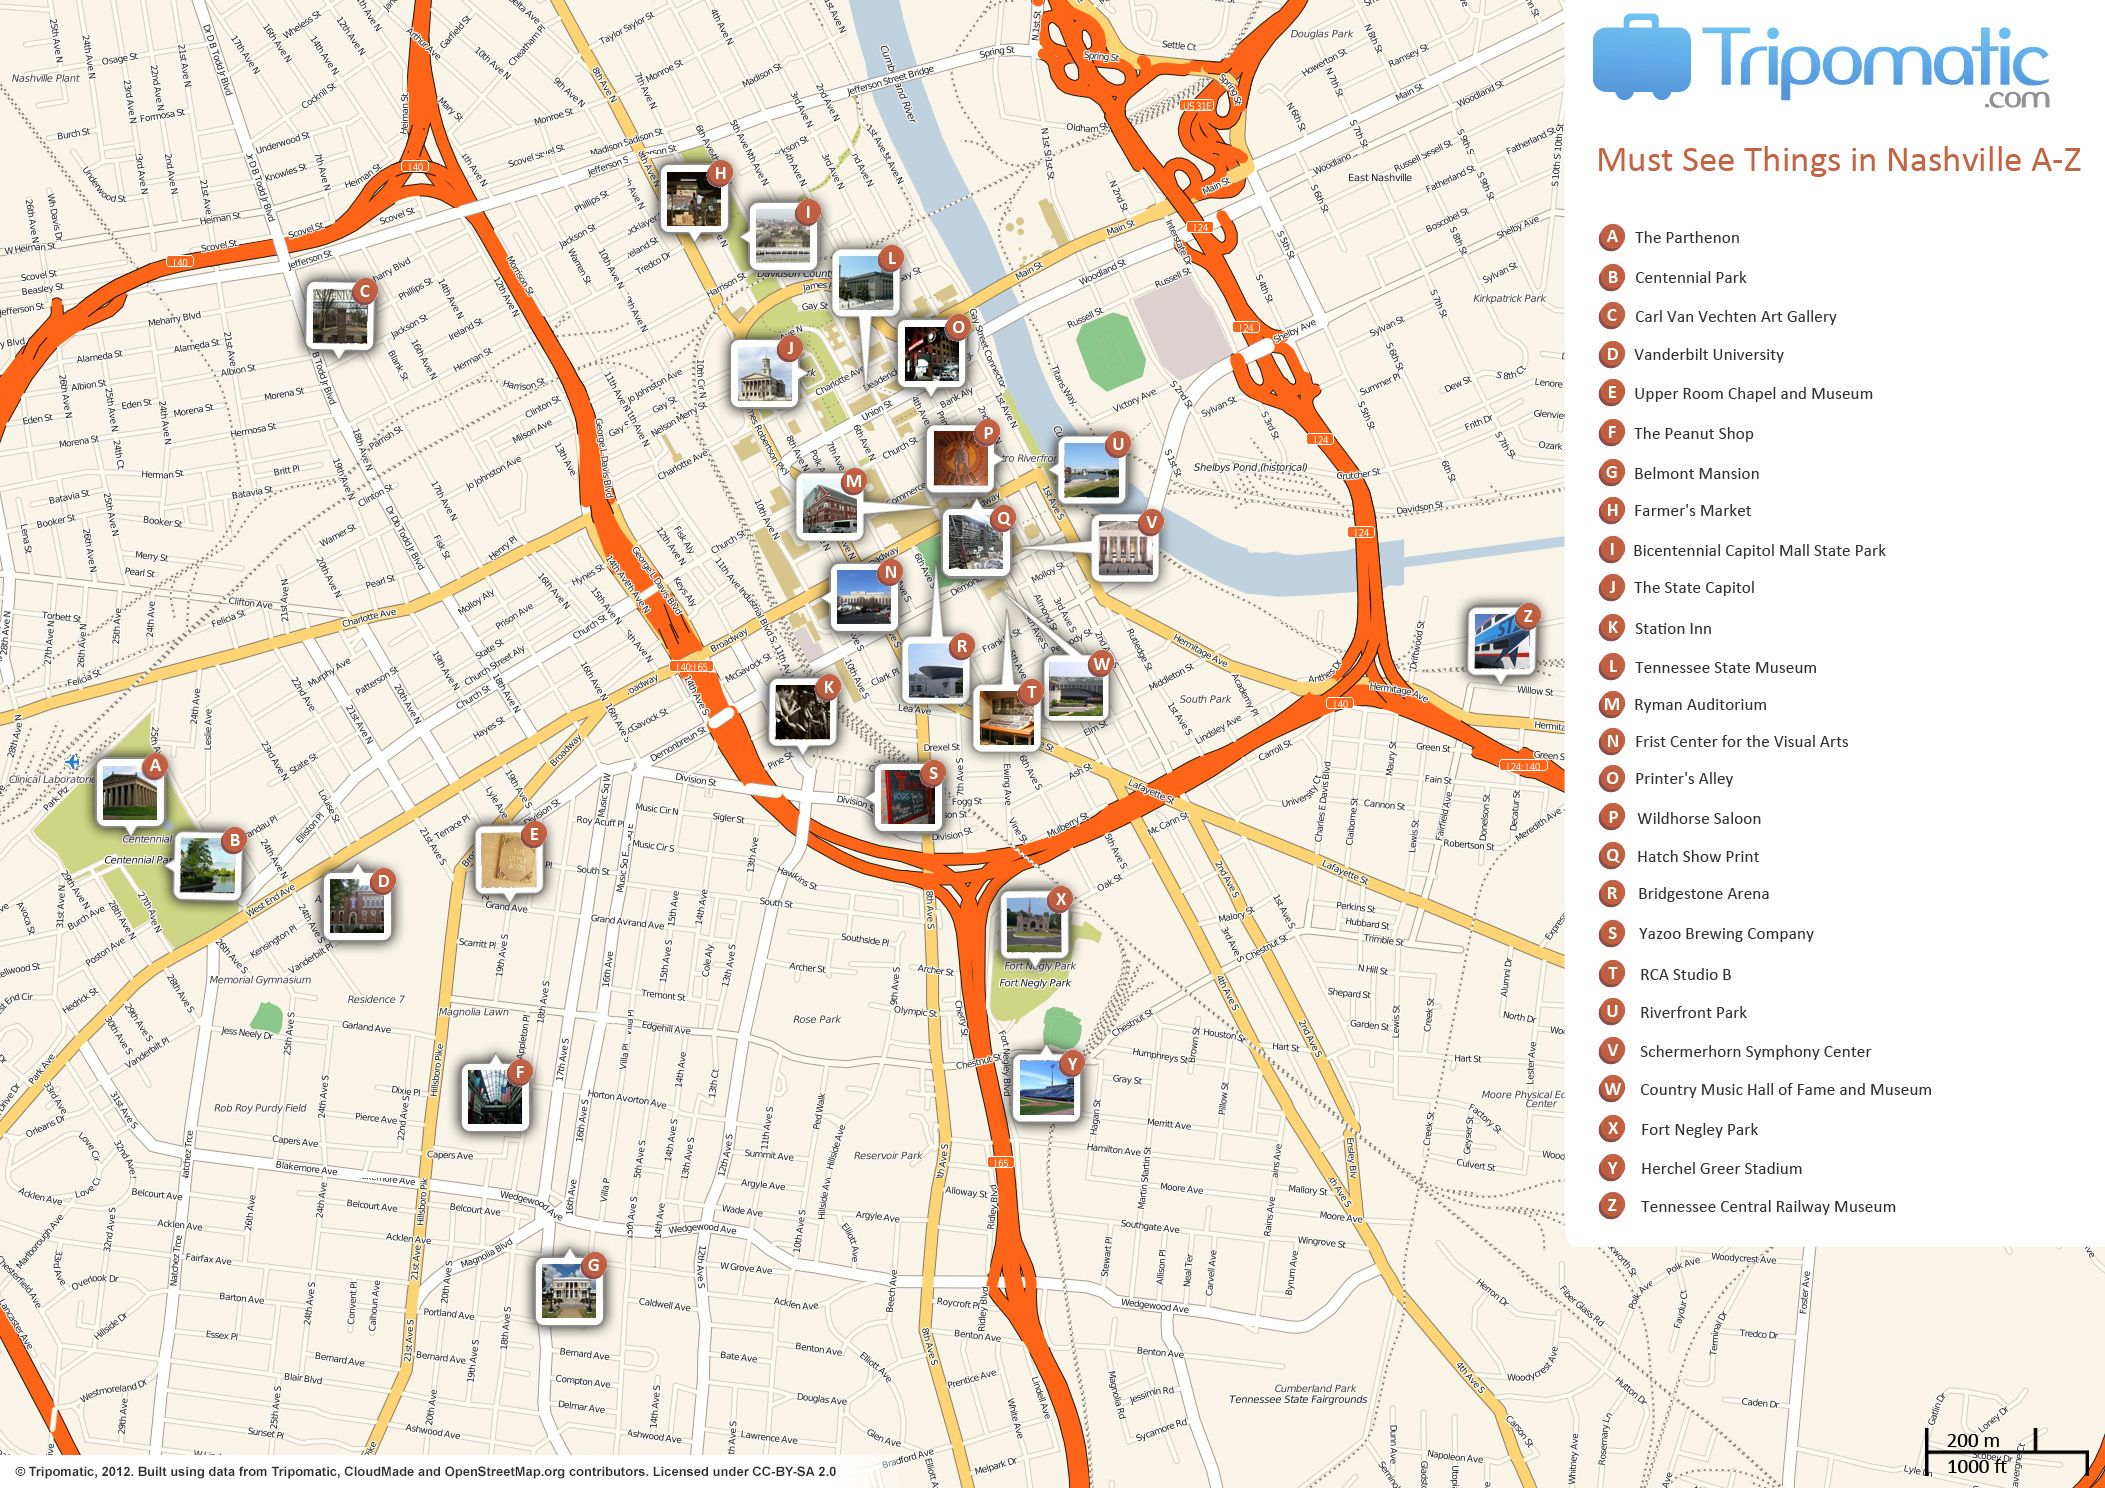 map of nashville attractions tripomatic travel pinterest